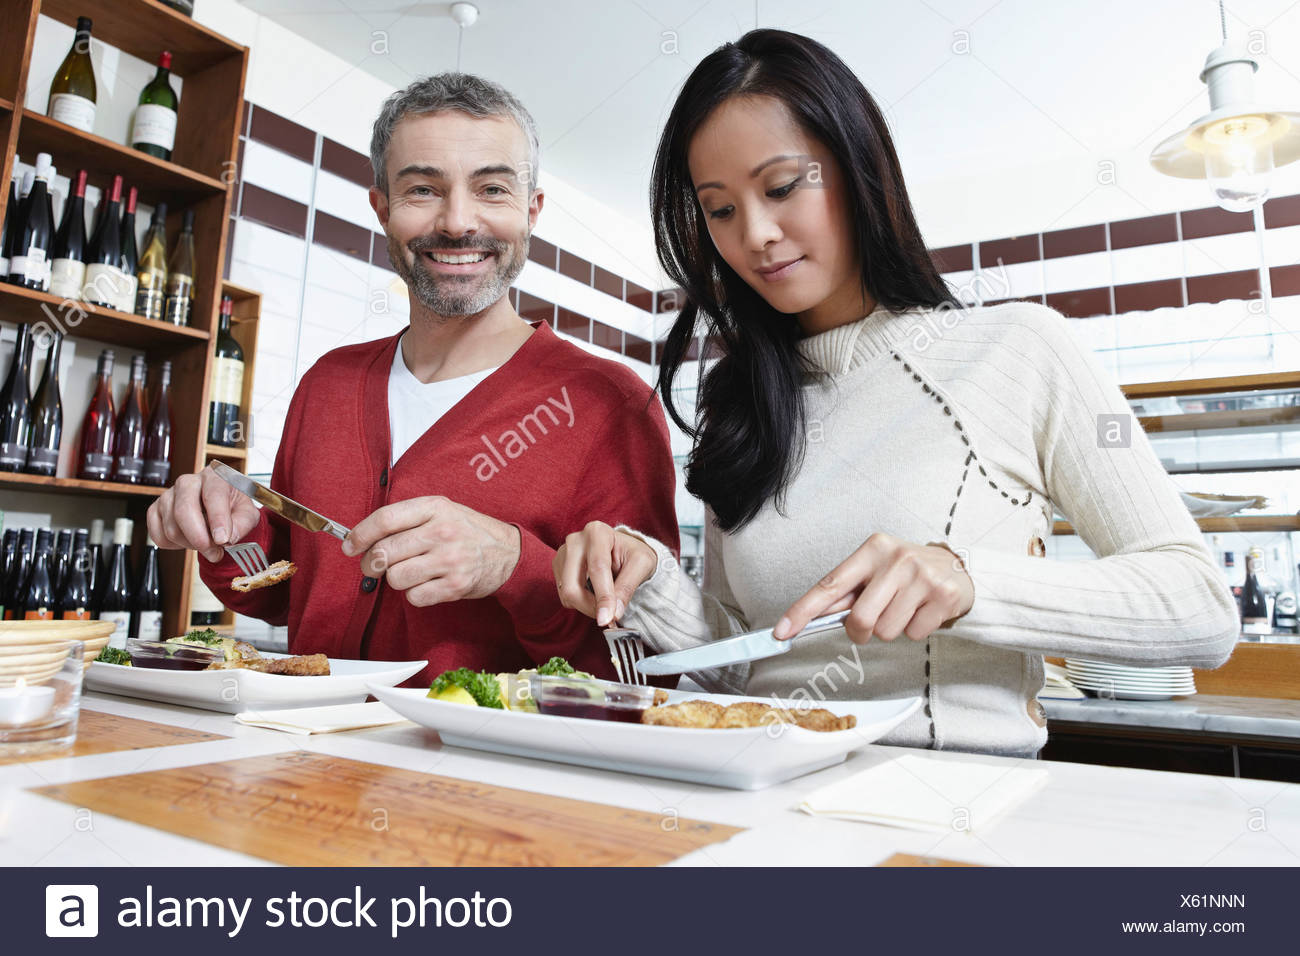 Germany, Cologne, Couple eating food in kitchen, smiling Stock Photo